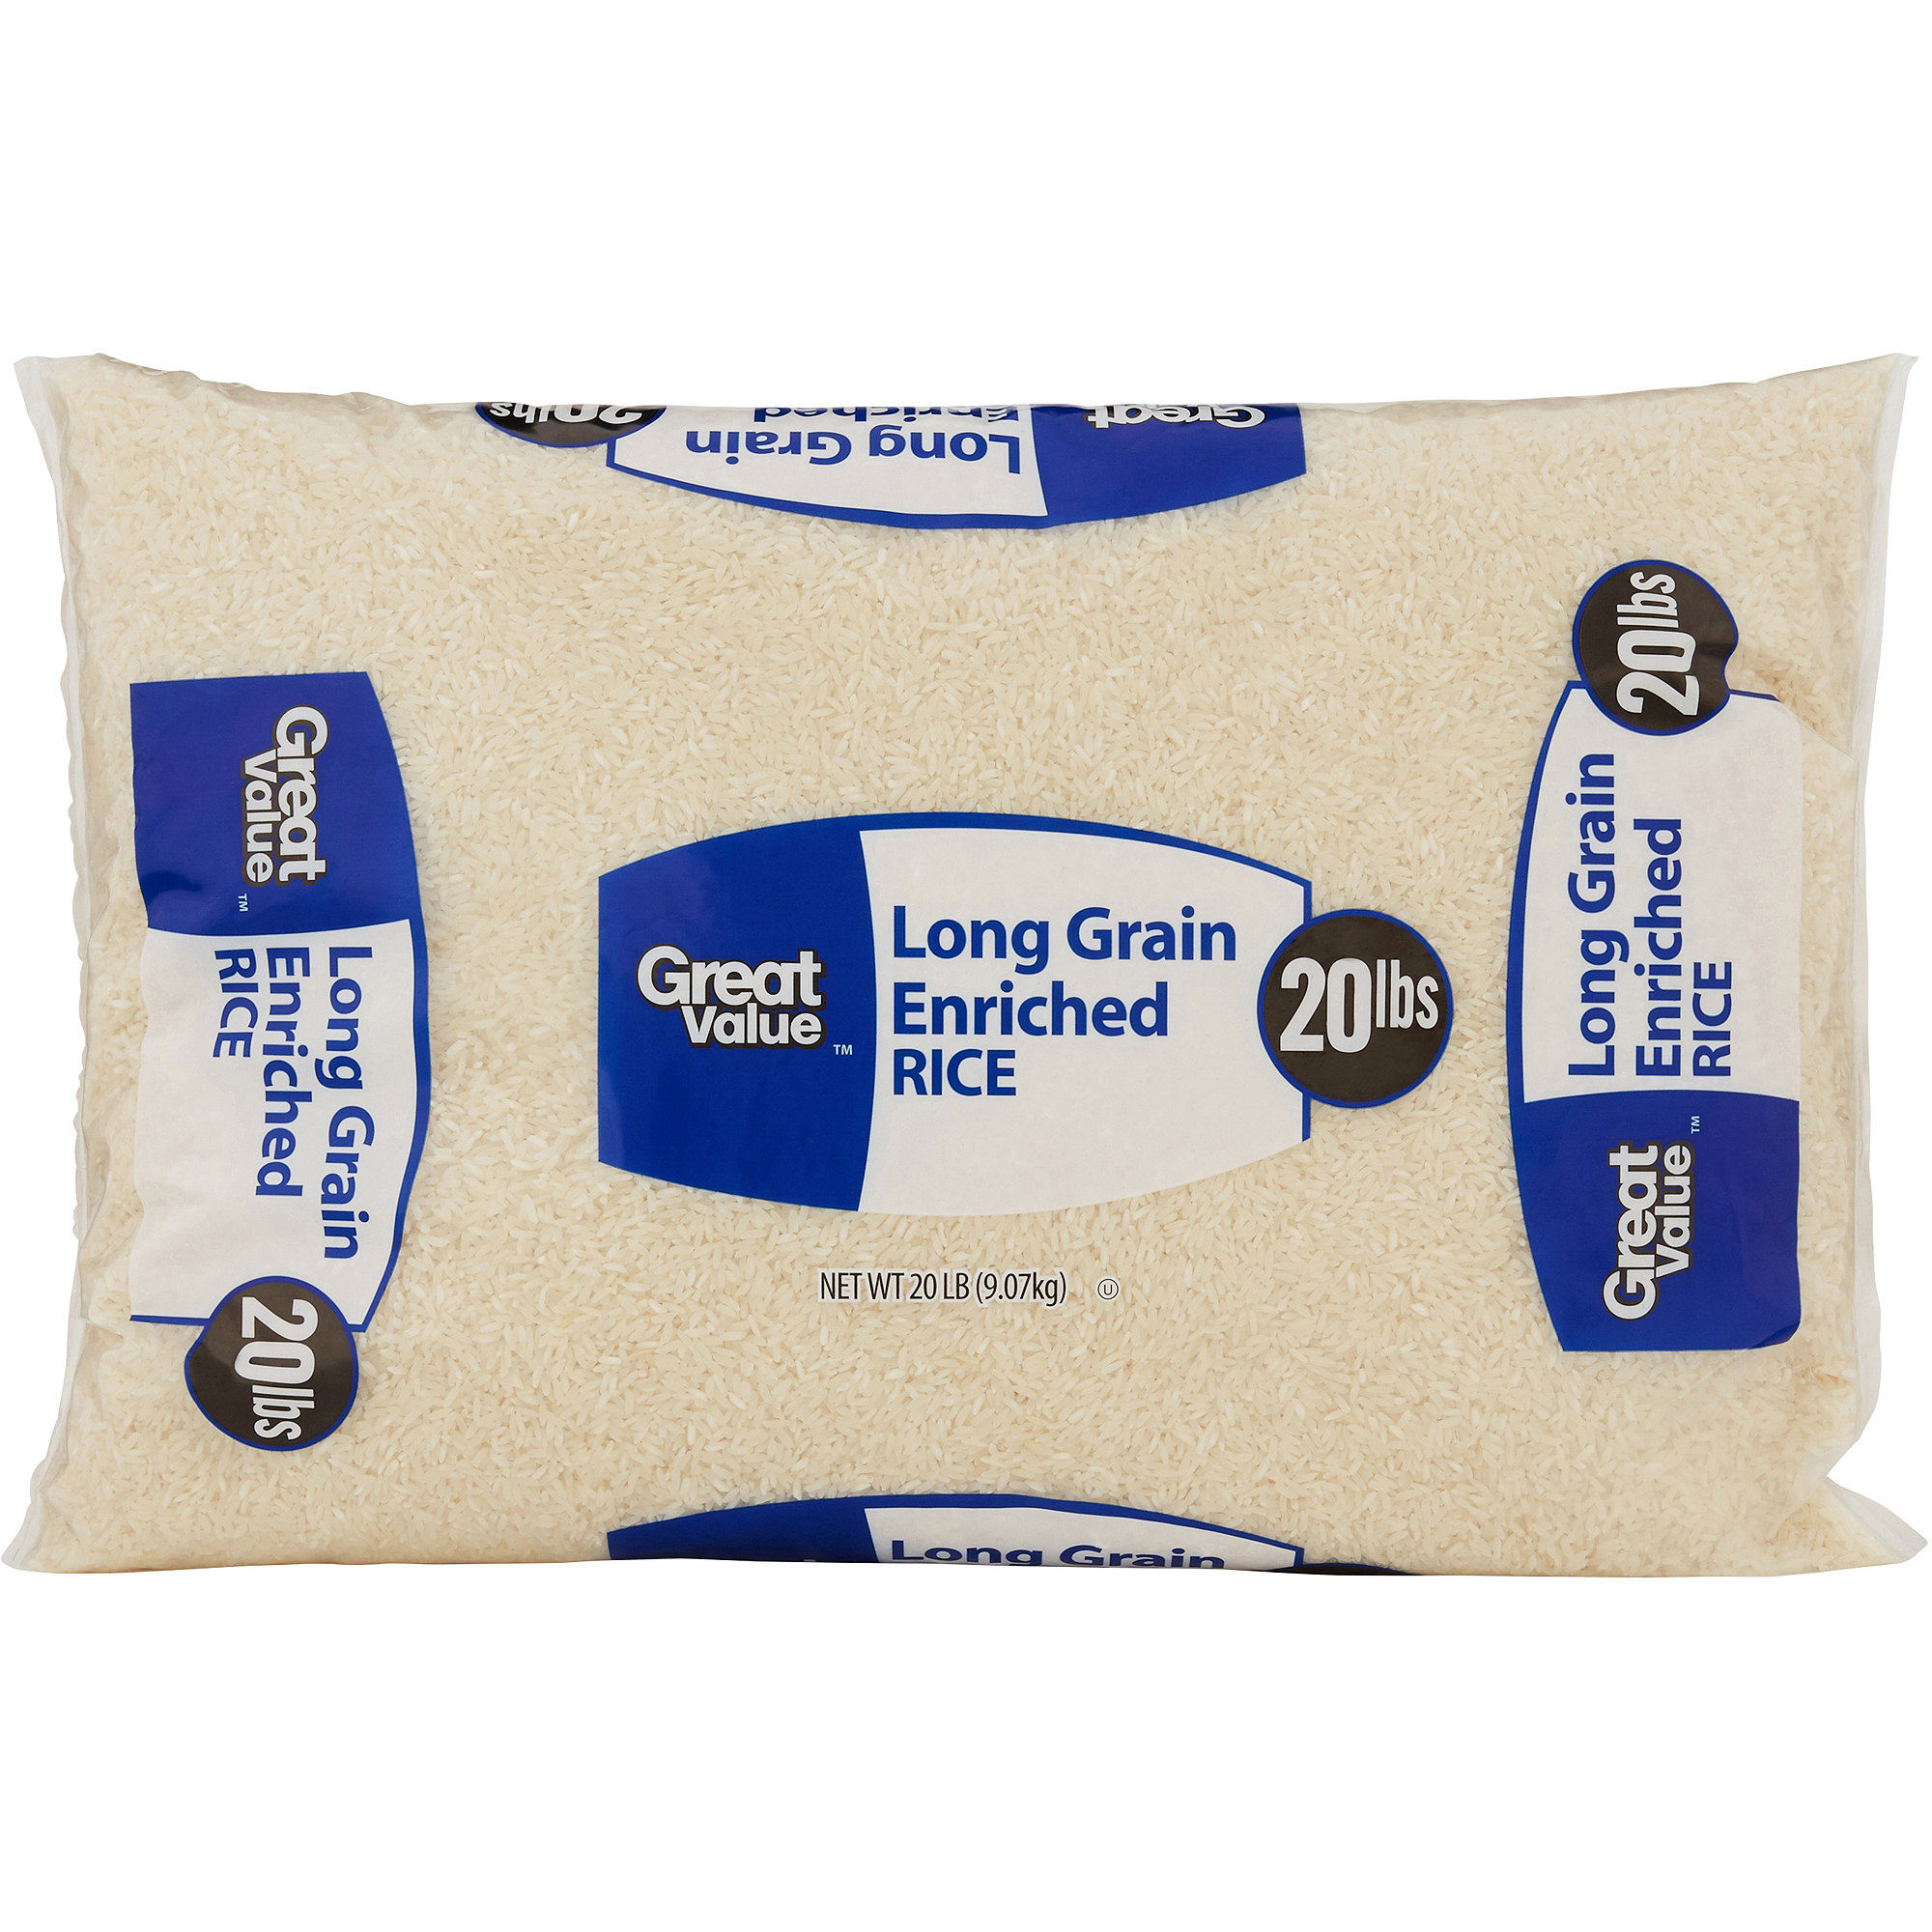 Great Value: Long Grain Enriched Rice, 20 Lb